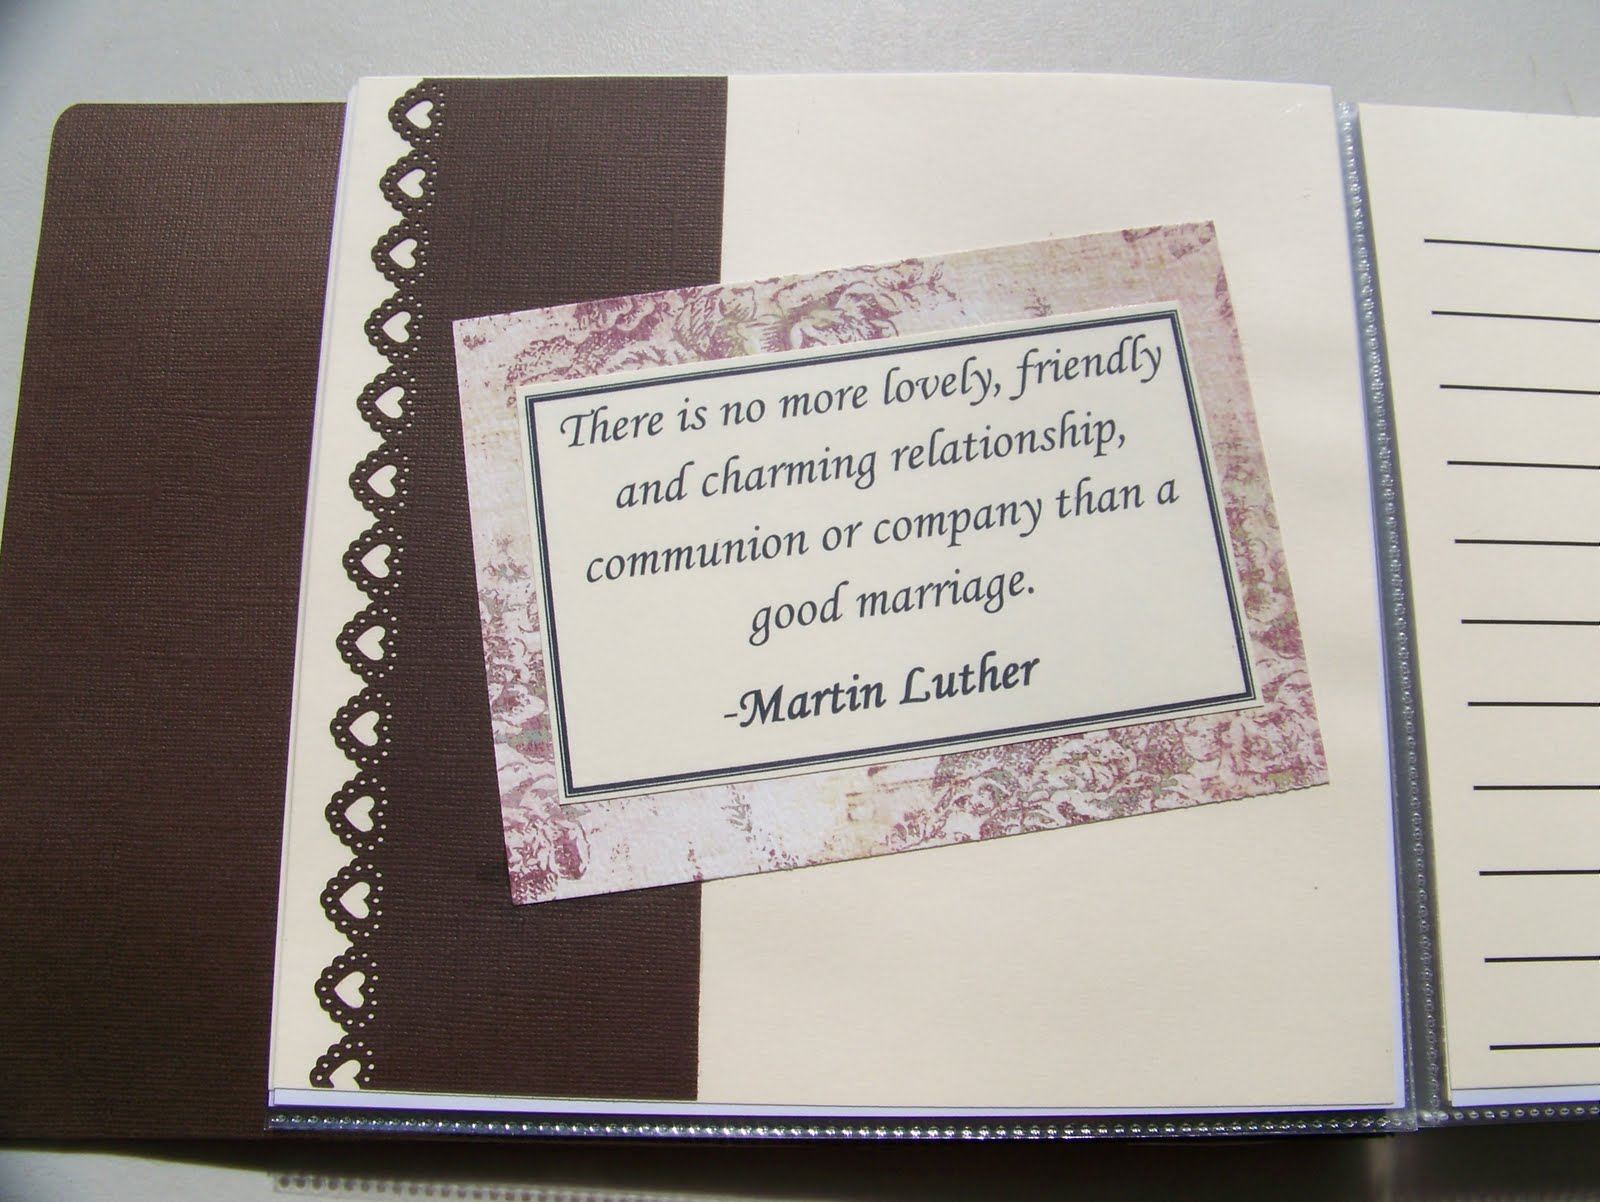 Bridal Shower Quotes For Scrapbooking QuotesGram